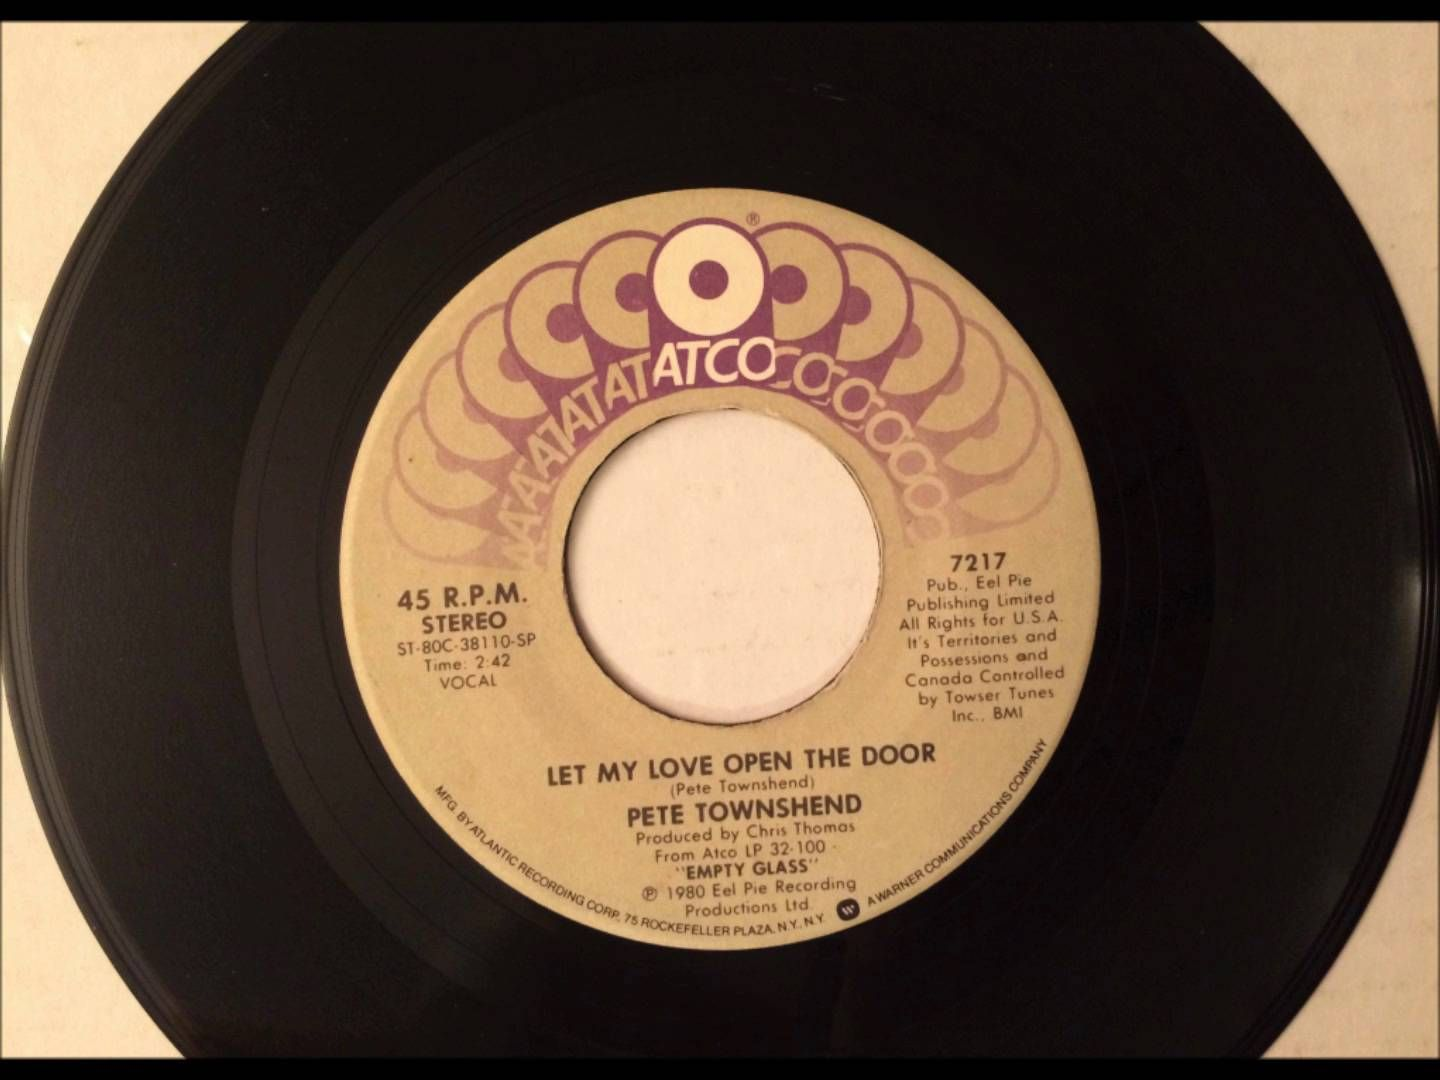 Let My Love Open The Door Pete Townsend 1980 Vinyl 45rpm Let It Be My Love Pete